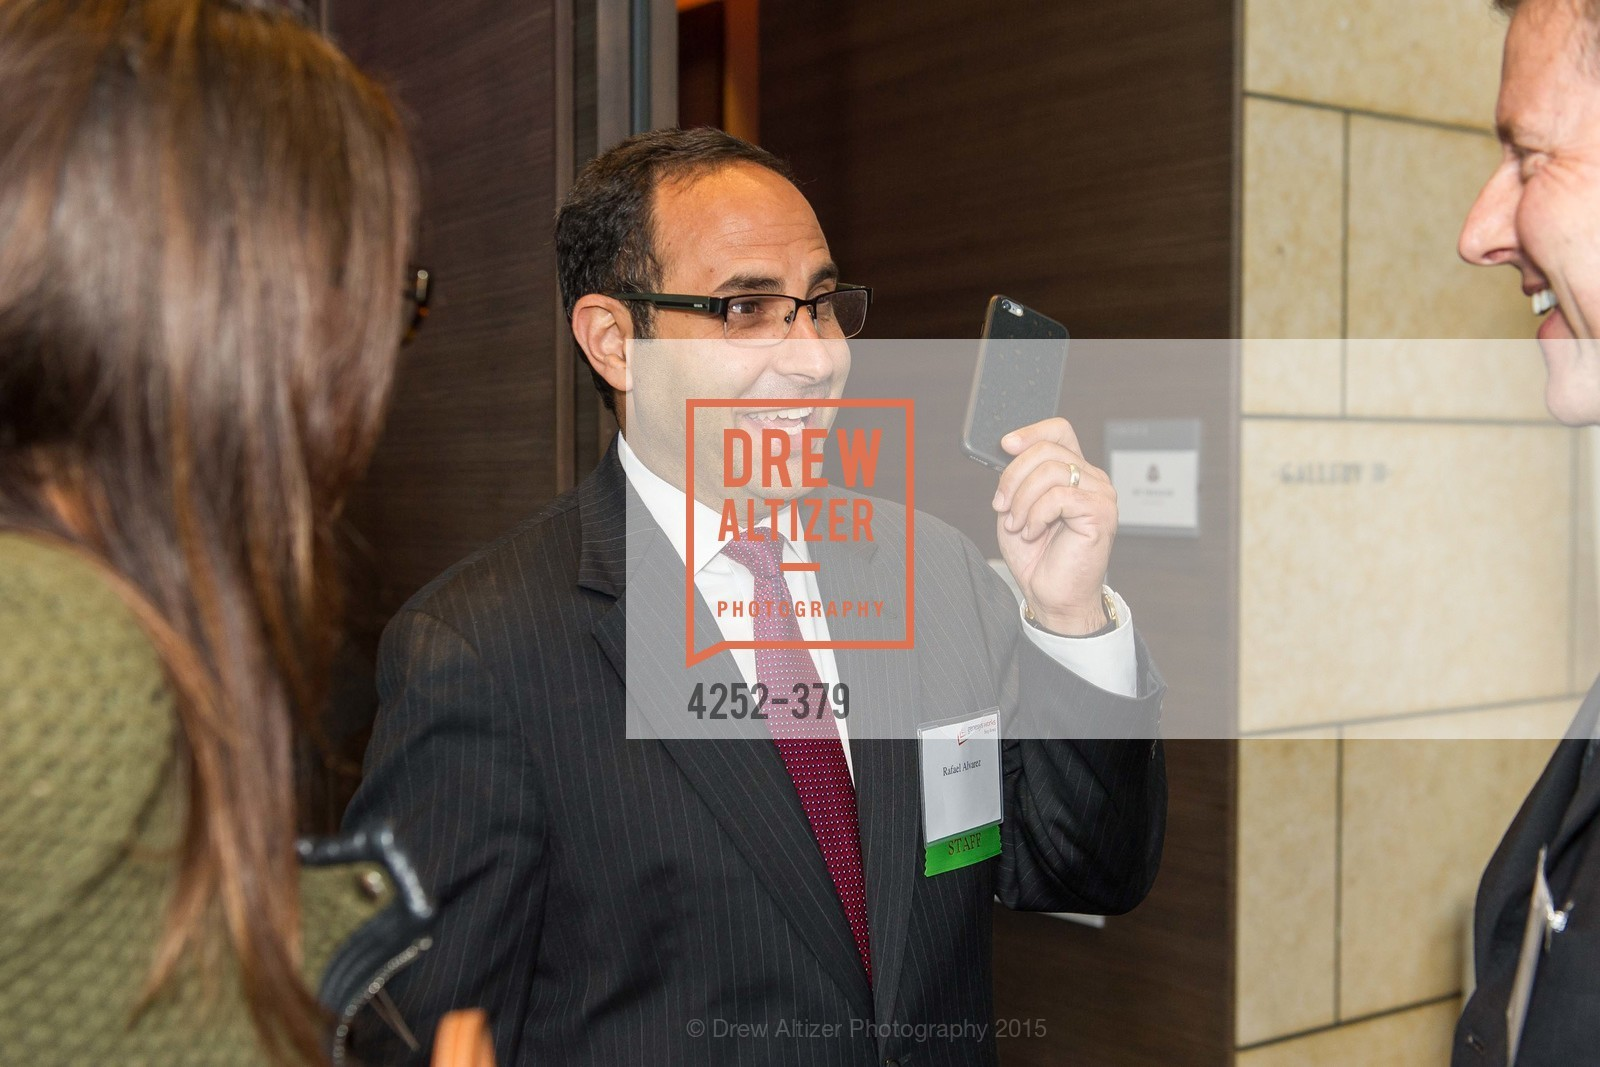 Rafel Alvarez, Genesys Works Bay Area Presents BREAKING THROUGH, St. Regis Hotel. 125 3rd St, October 14th, 2015,Drew Altizer, Drew Altizer Photography, full-service agency, private events, San Francisco photographer, photographer california